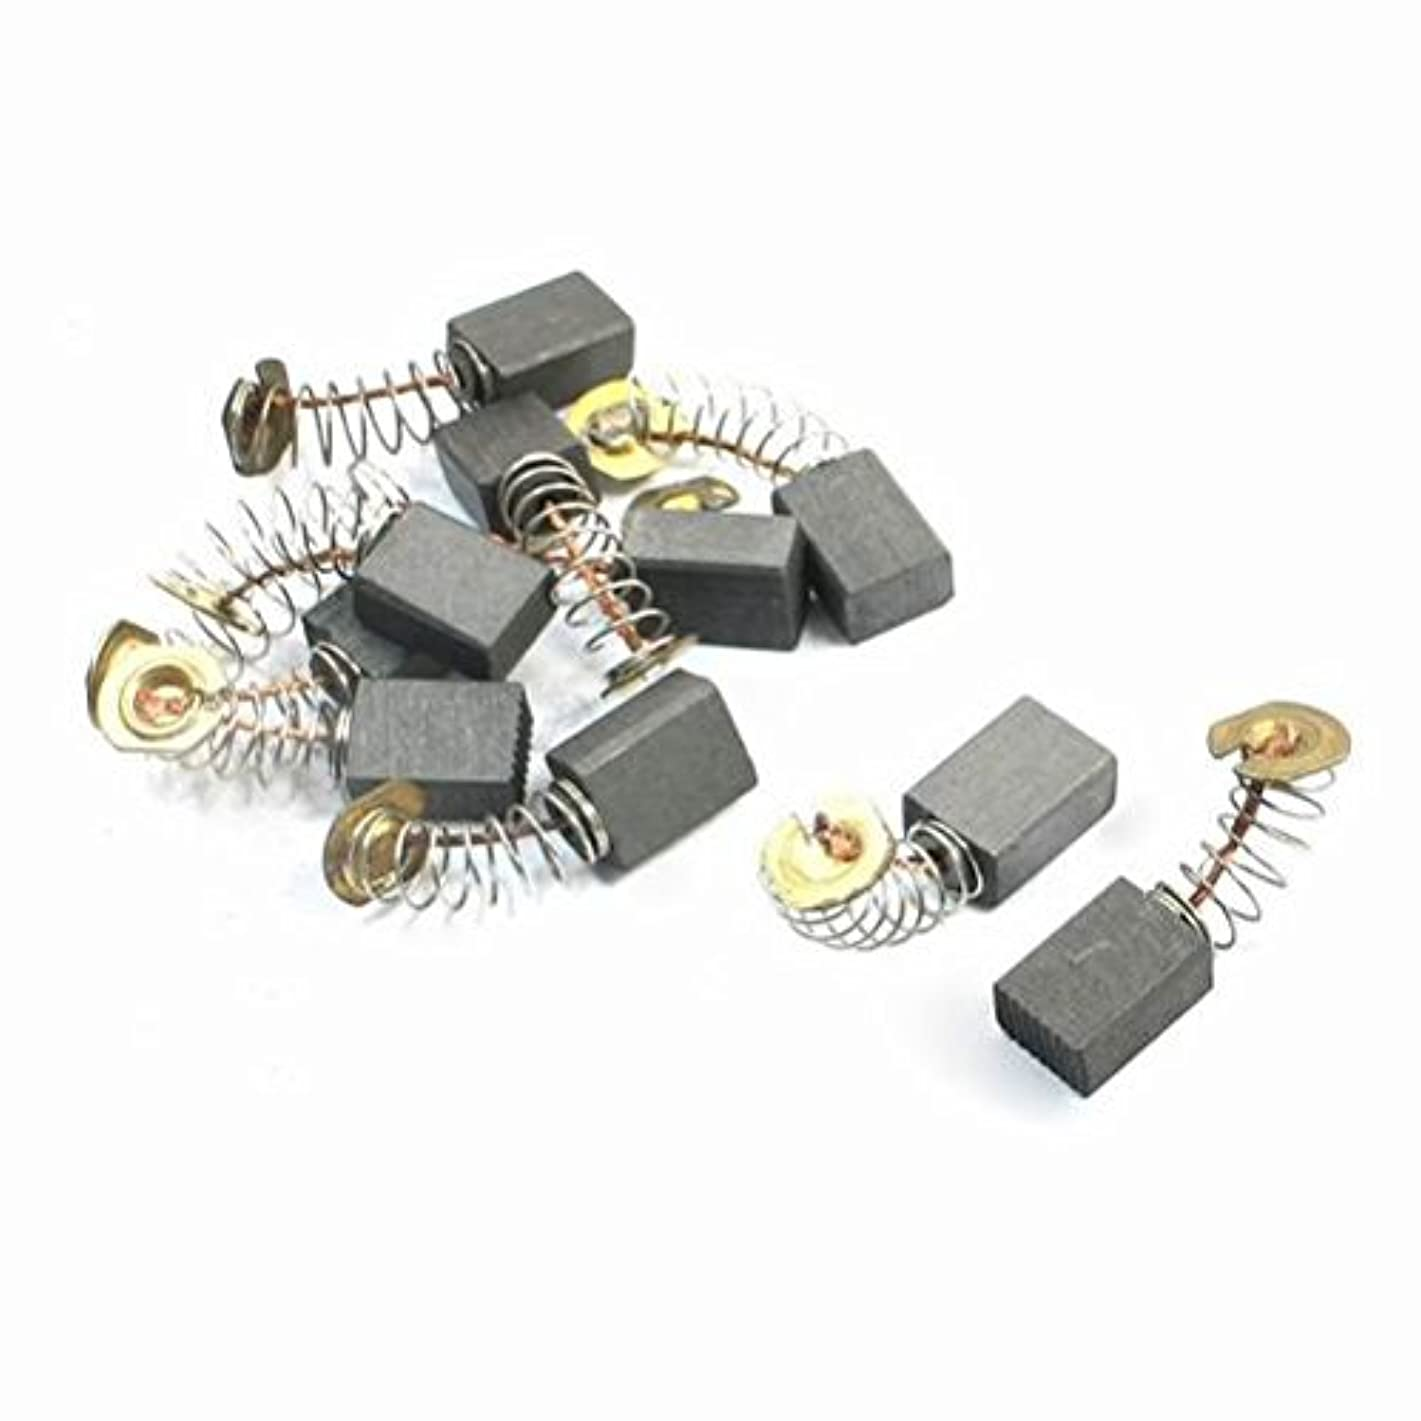 Motors 10Pcs Electric Drill Parts Motor Carbon Brushes 12.4mm x 9mm x 6mm By DYTrade